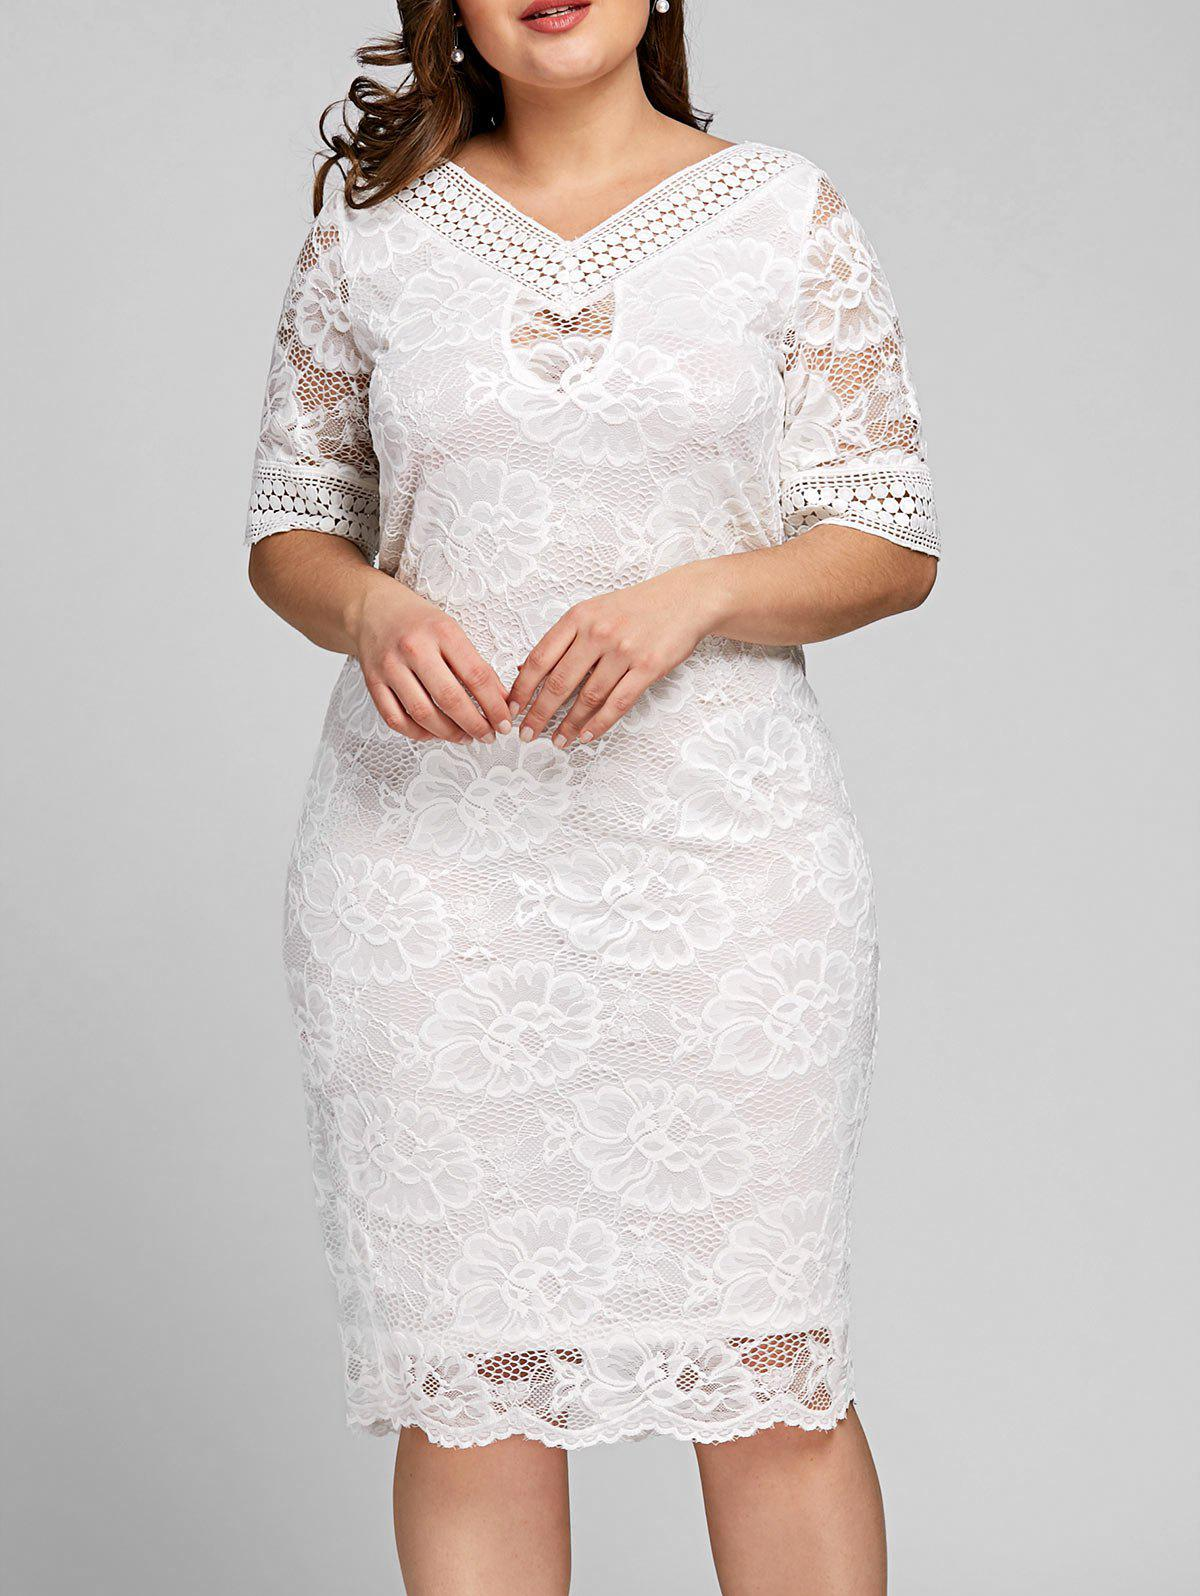 31% OFF] Plus Size V Neck Midi Lace Dress | Rosegal